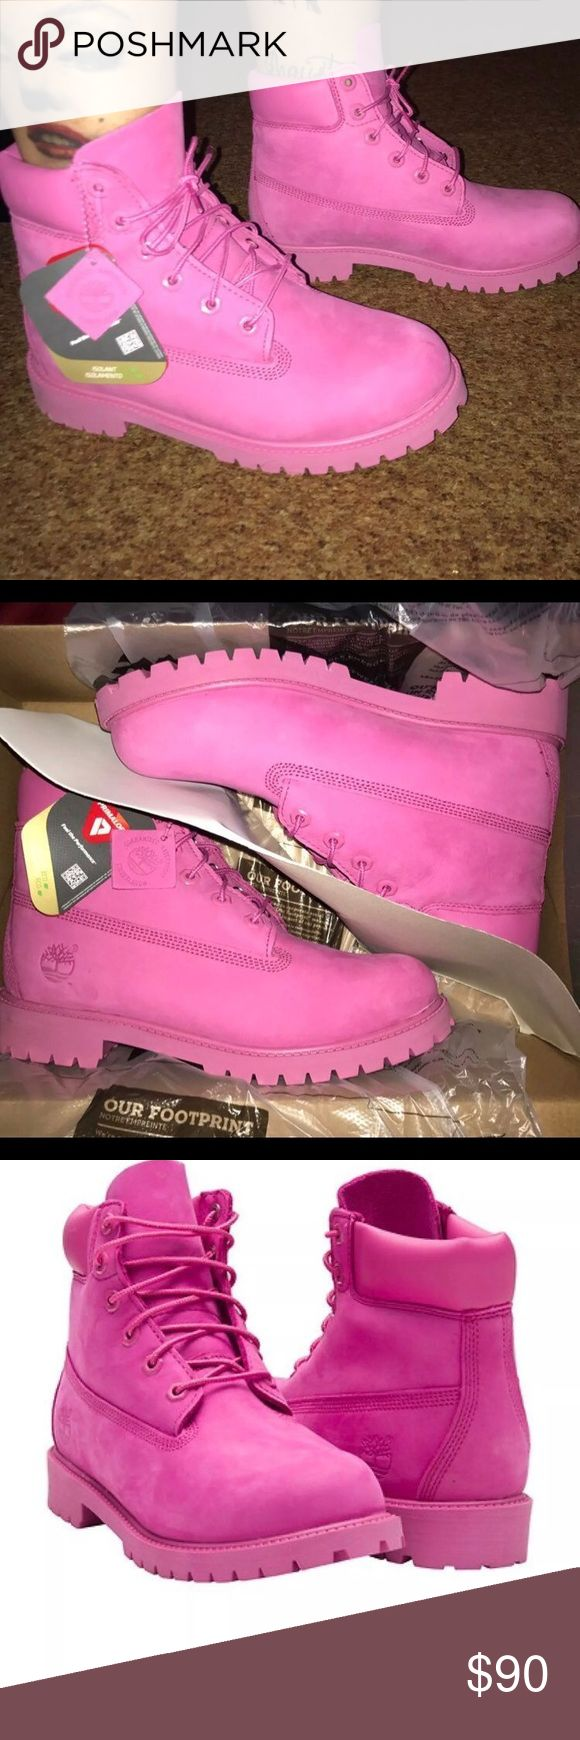 Bubble gum pink Timberland boots Boys grade school size Timberland Shoes Boots